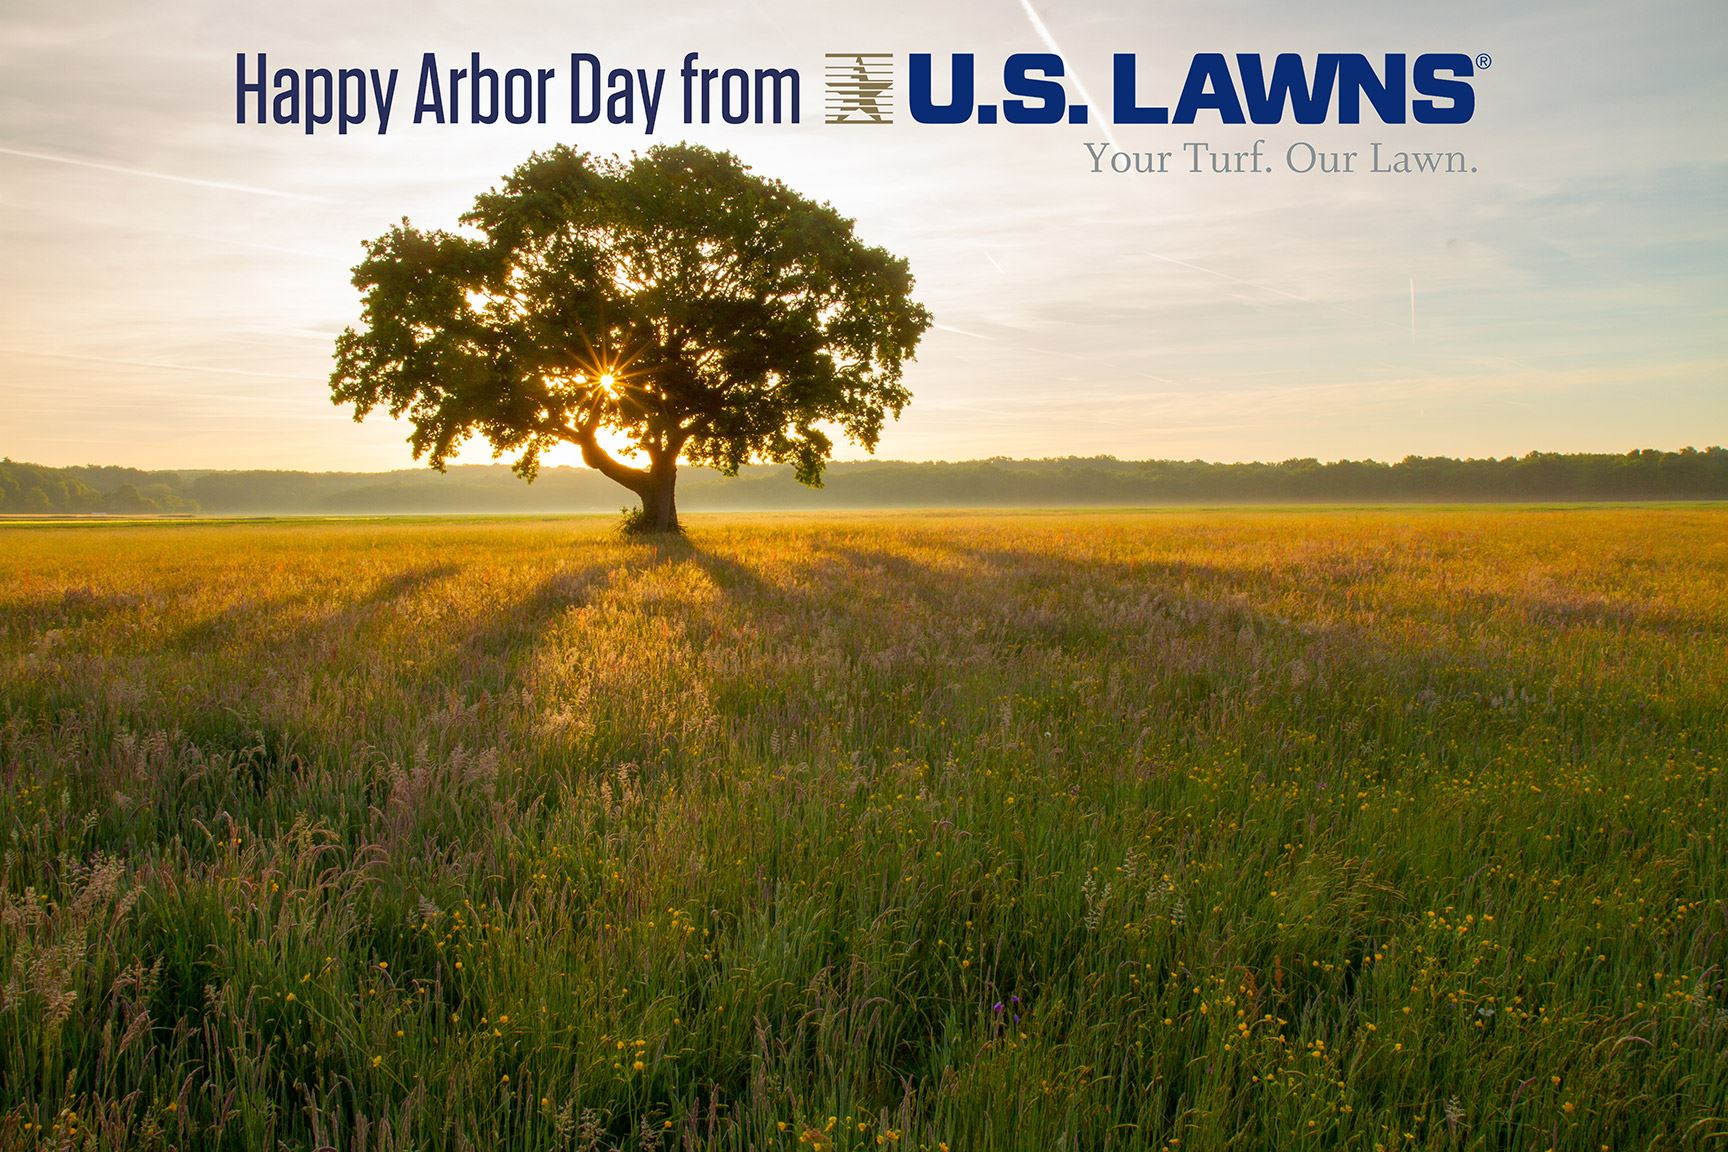 Arbor Day Beaumont TX, Arbor Day Southeast Texas, SETX Arbor Day Activities, US Lawns Beaumont, Landscaping Southeast Texas, SETX landscaping contractor, landscaping Orange TX